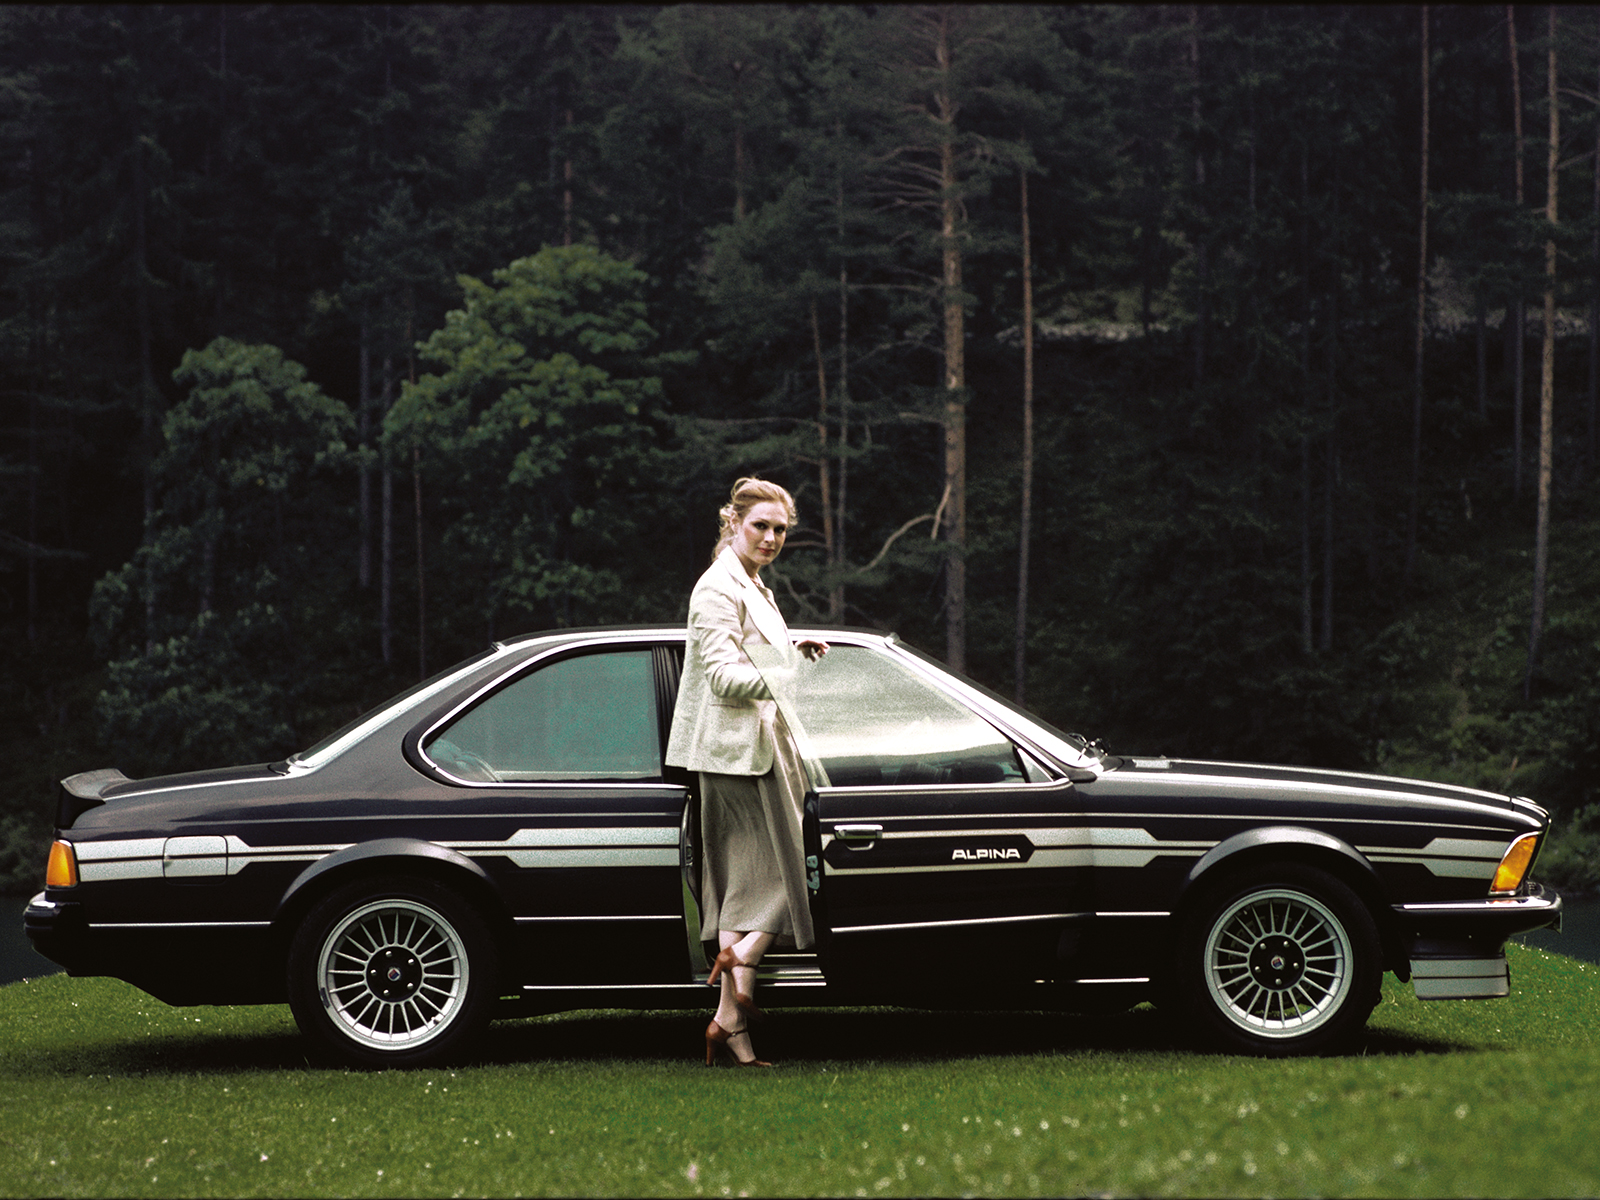 BMW 6 Series E24: ALPINA Automobiles